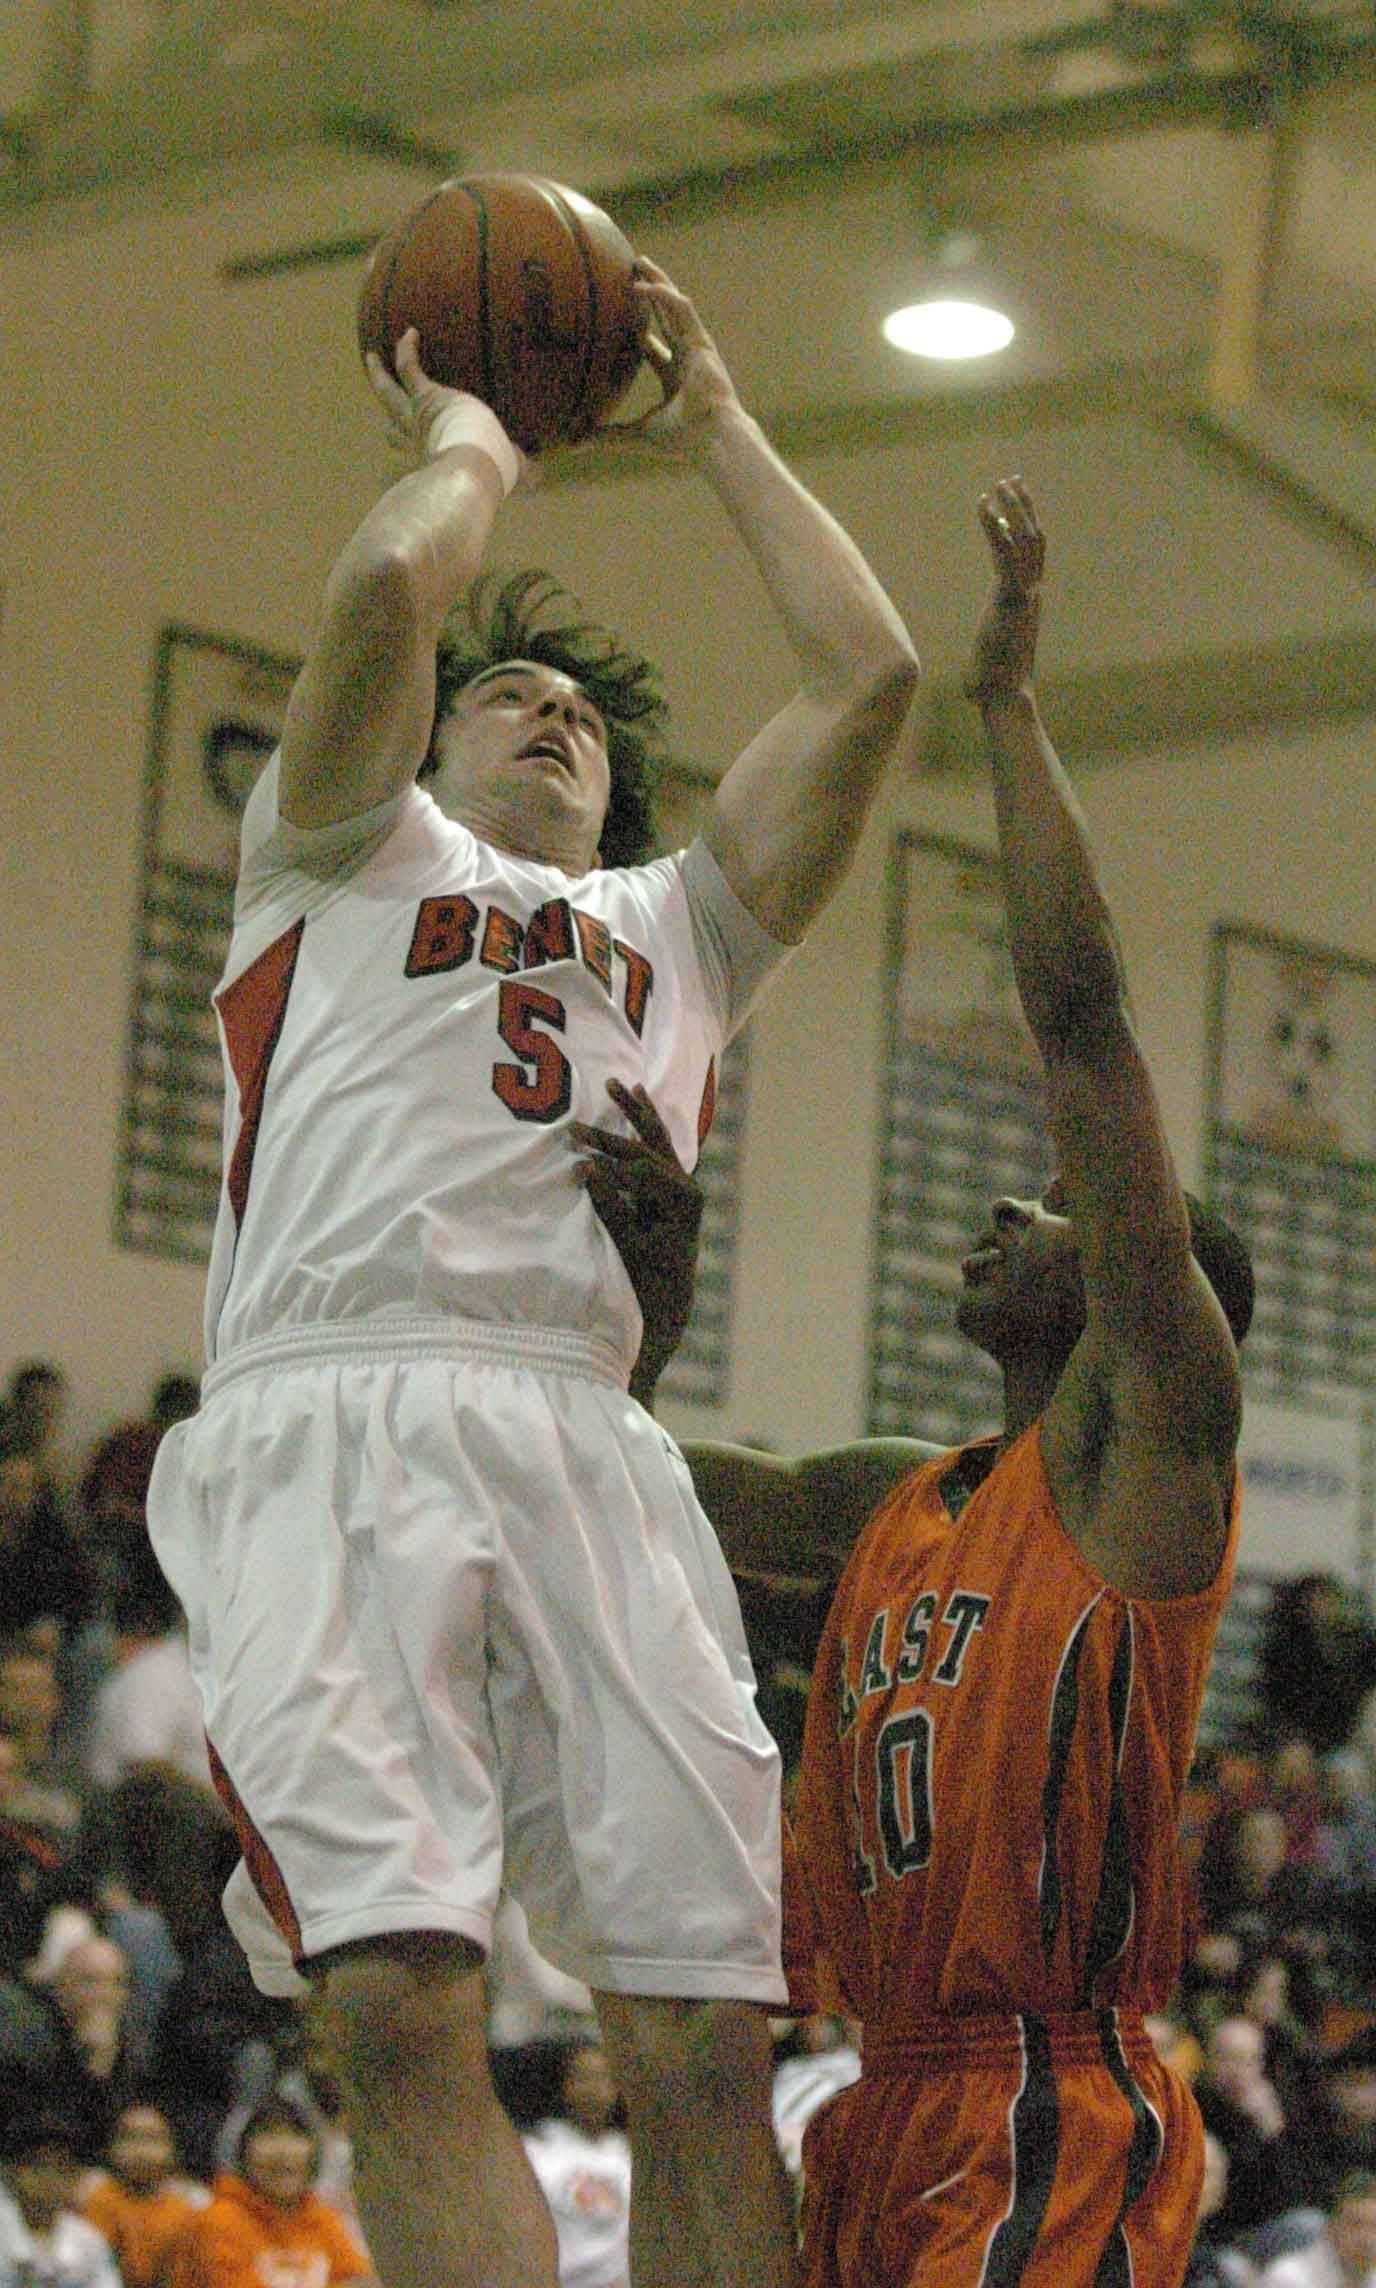 Pat Boyle of Benet Academy takes a shot over Jawan Straughter of Plainfield East.